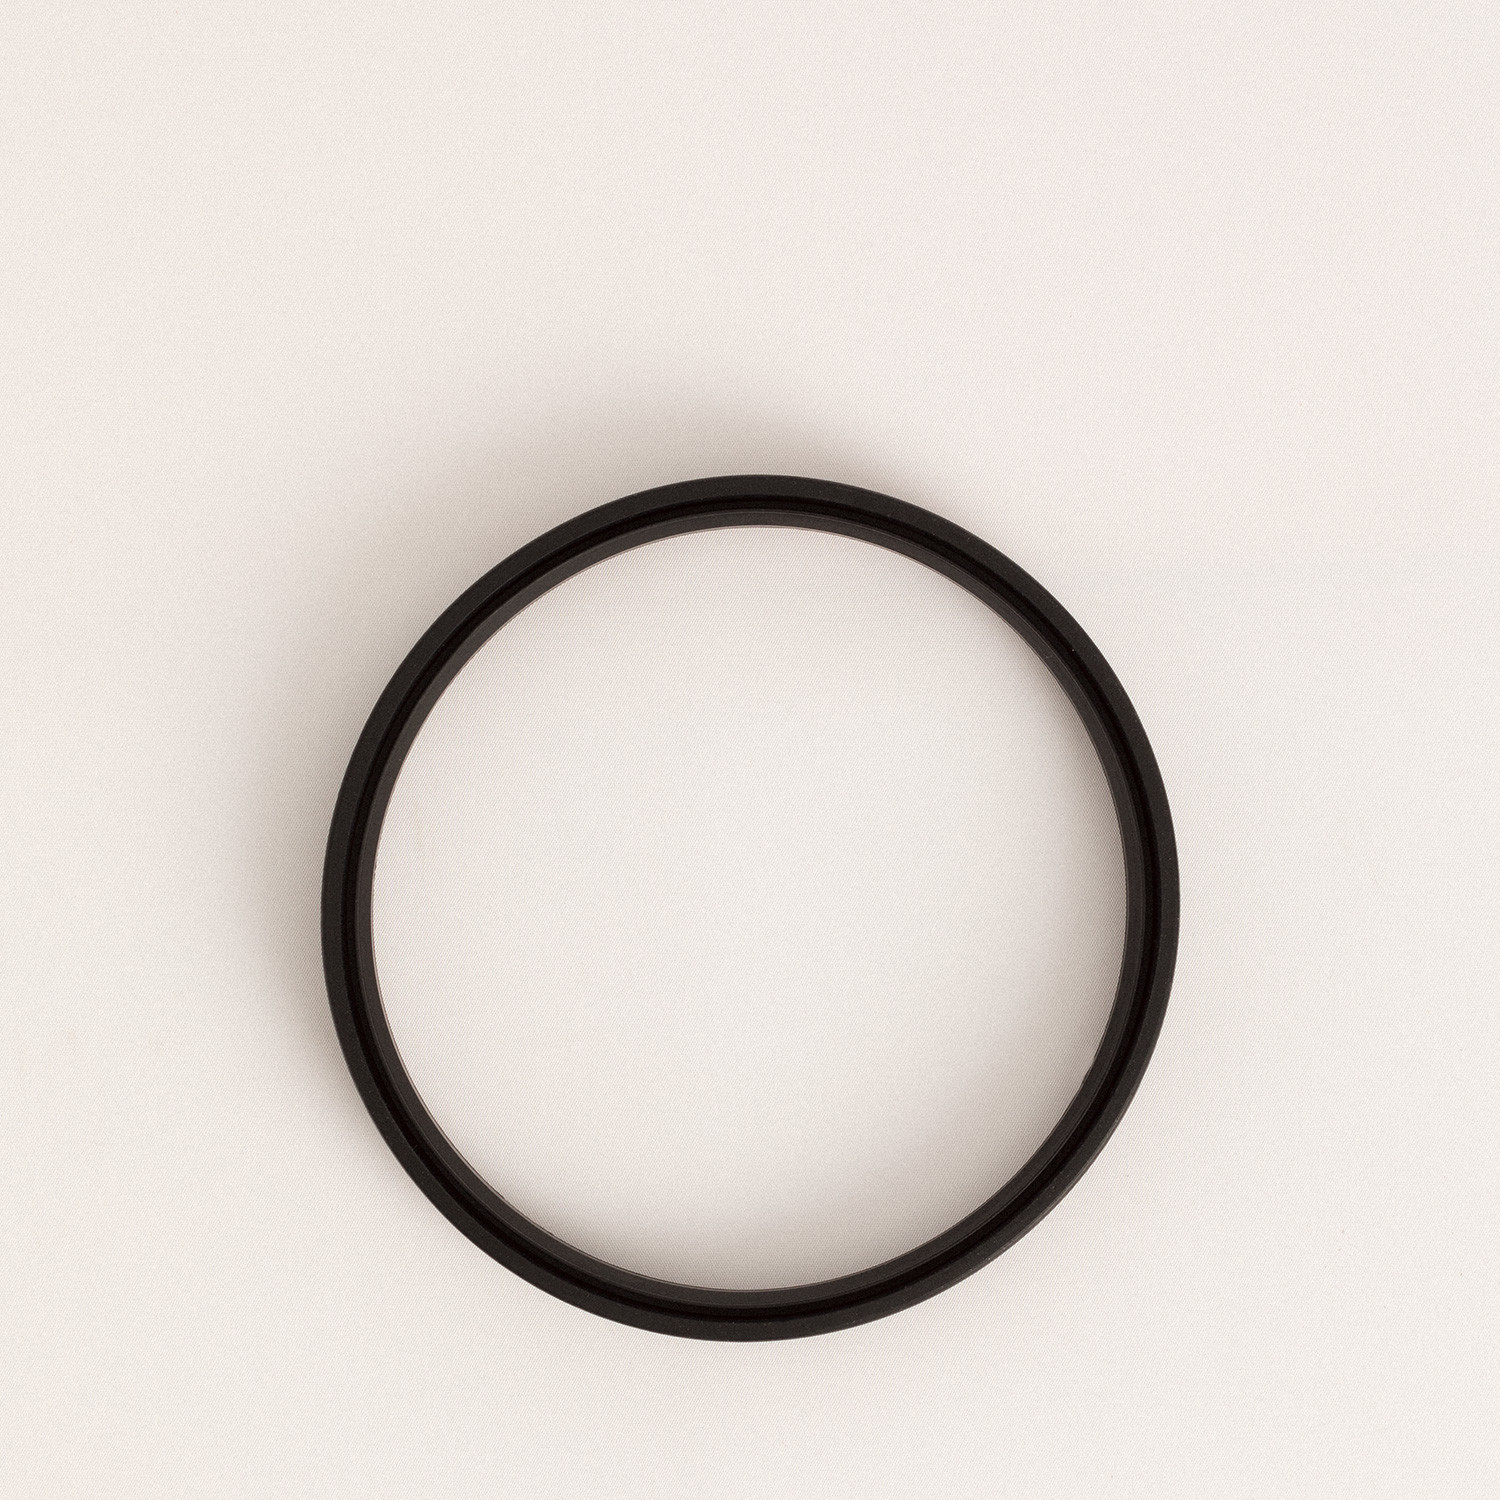 Rubber gasket for cooktop - CHEFBOT TOUCH and CHEFBOT COMPACT, imagen de galería 939159